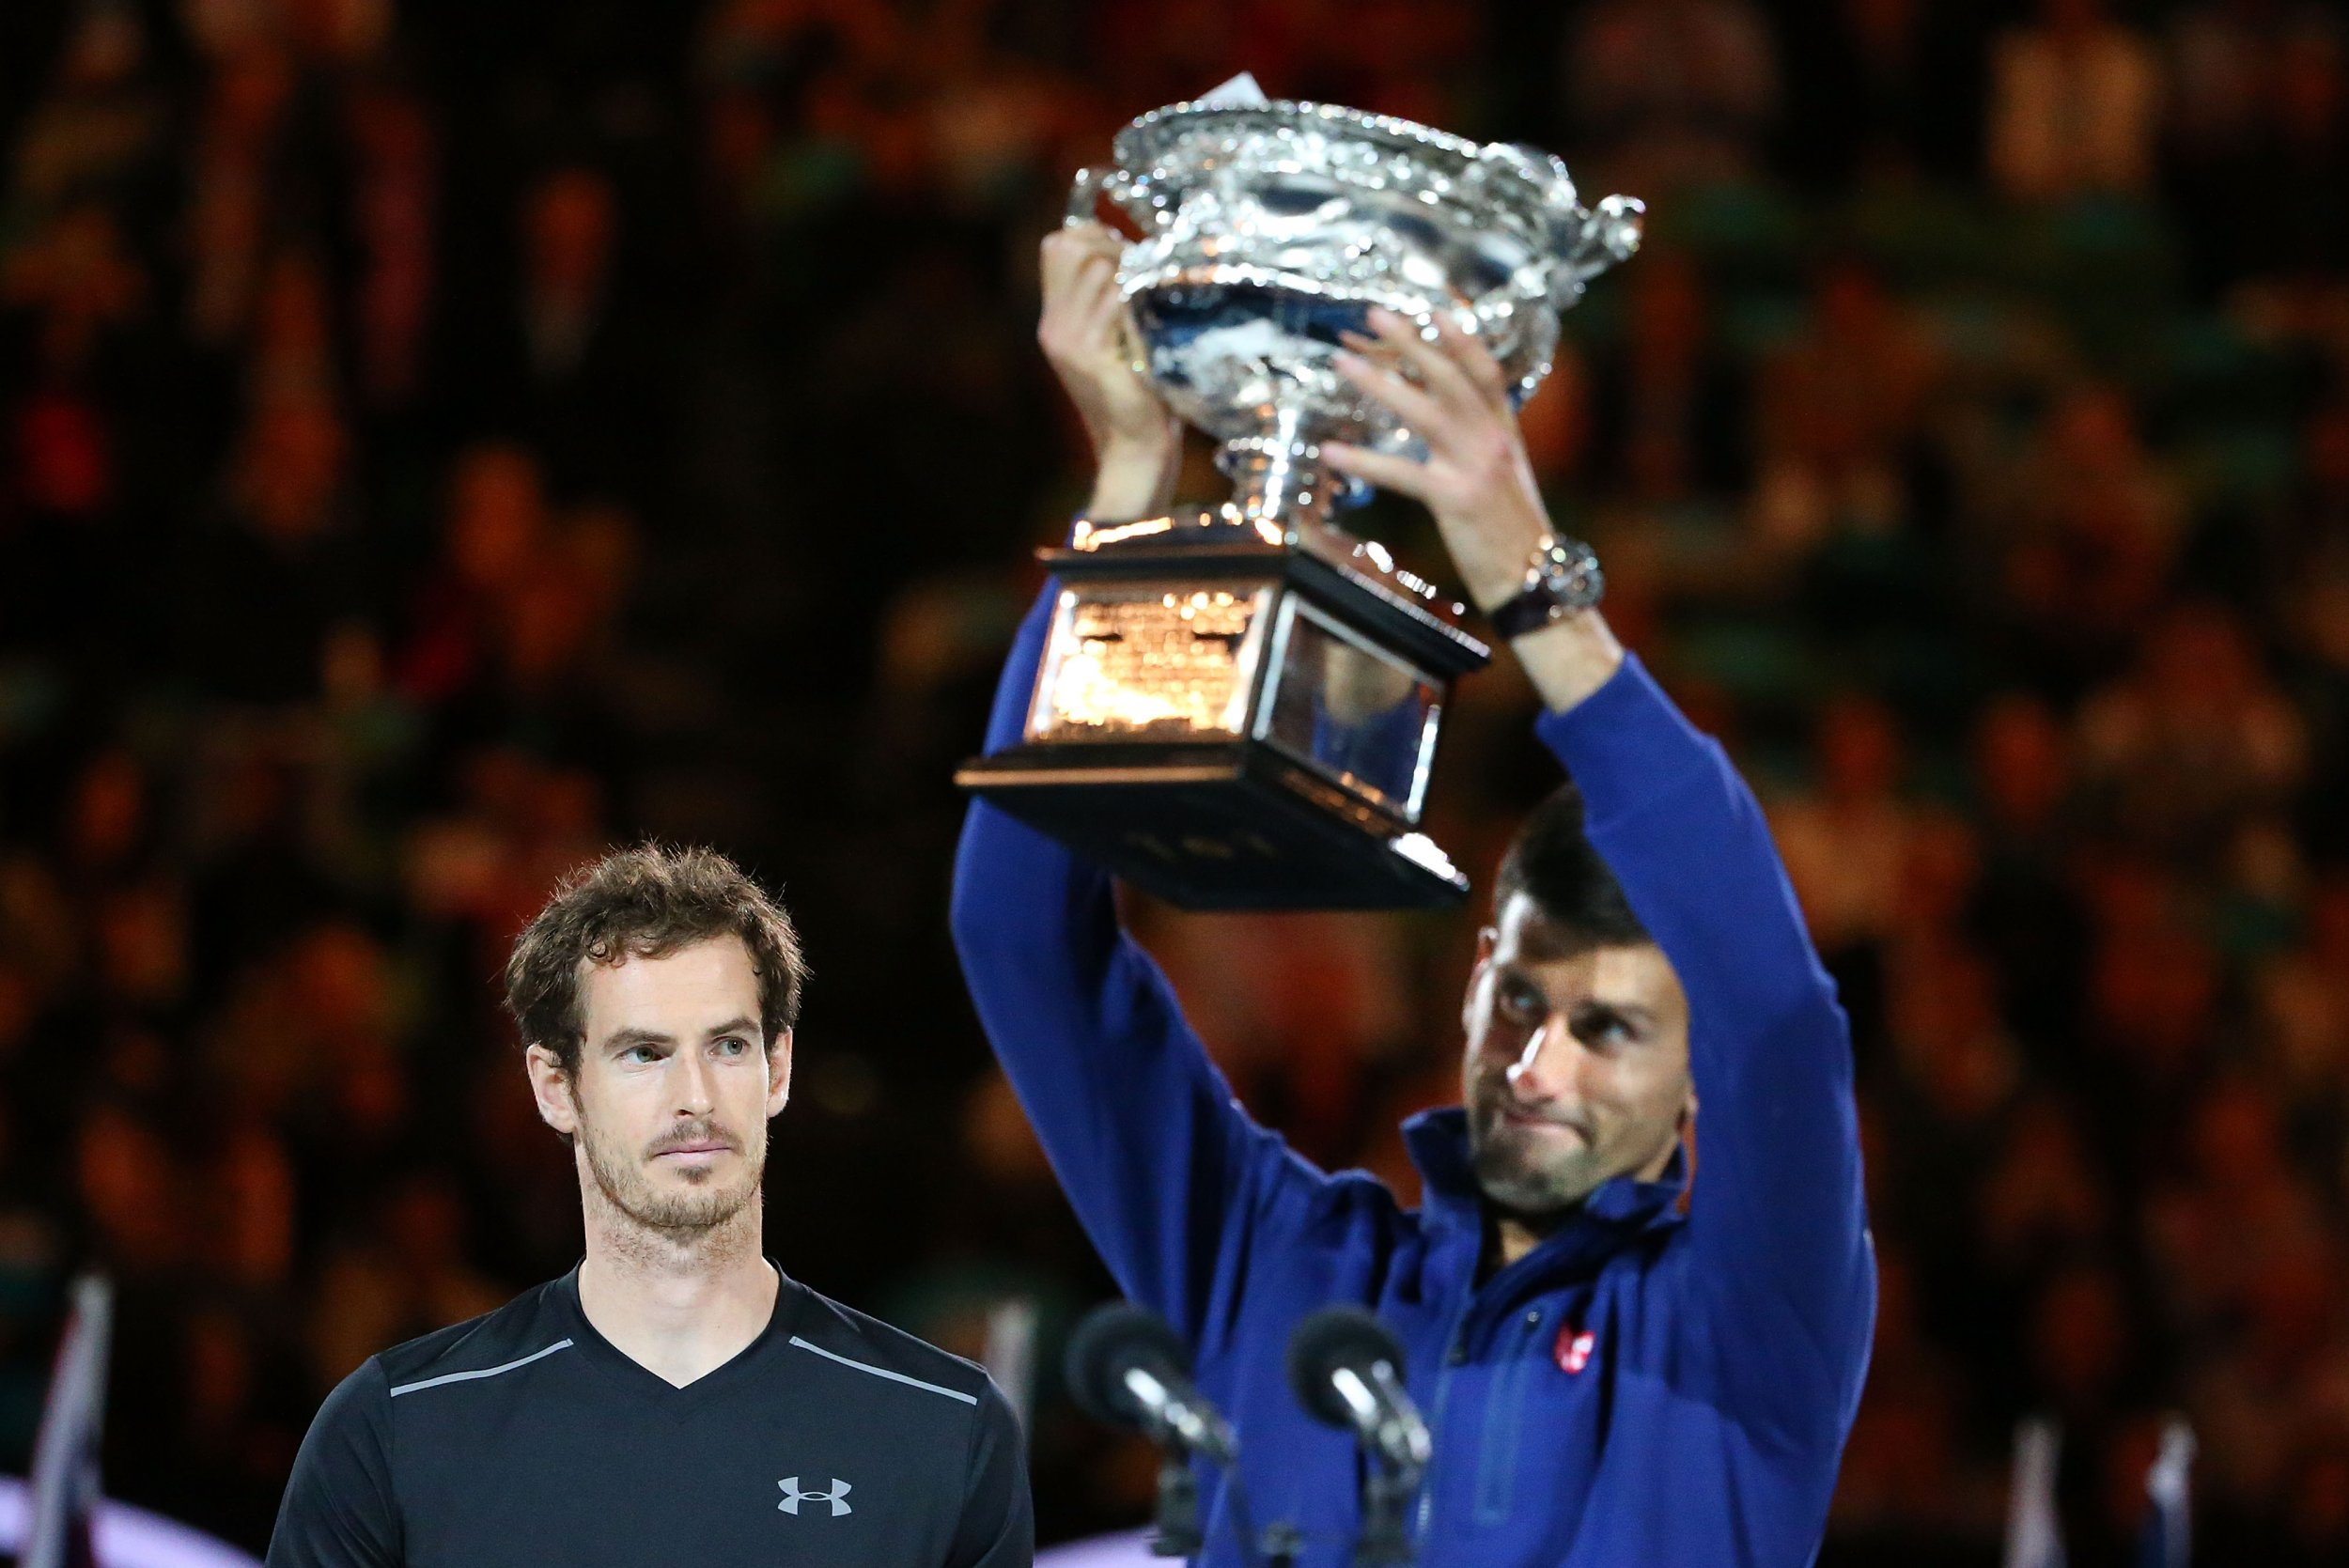 Novak Djokovic lifts the 2016 Australian Open trophy after beating Britain's Andy Murray.